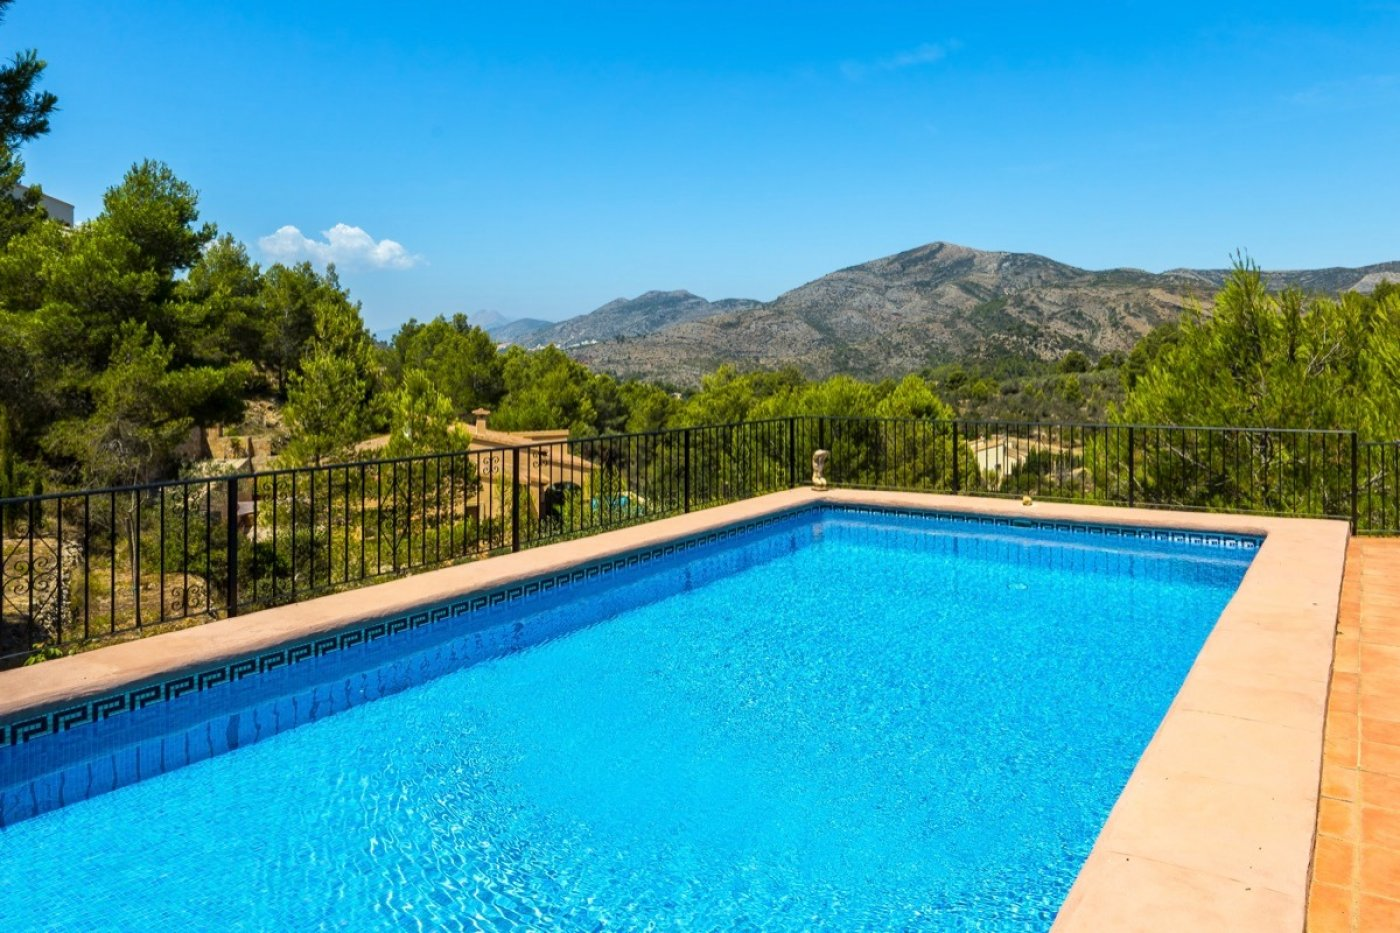 5 Bedroom Finca / Country House in Jalon